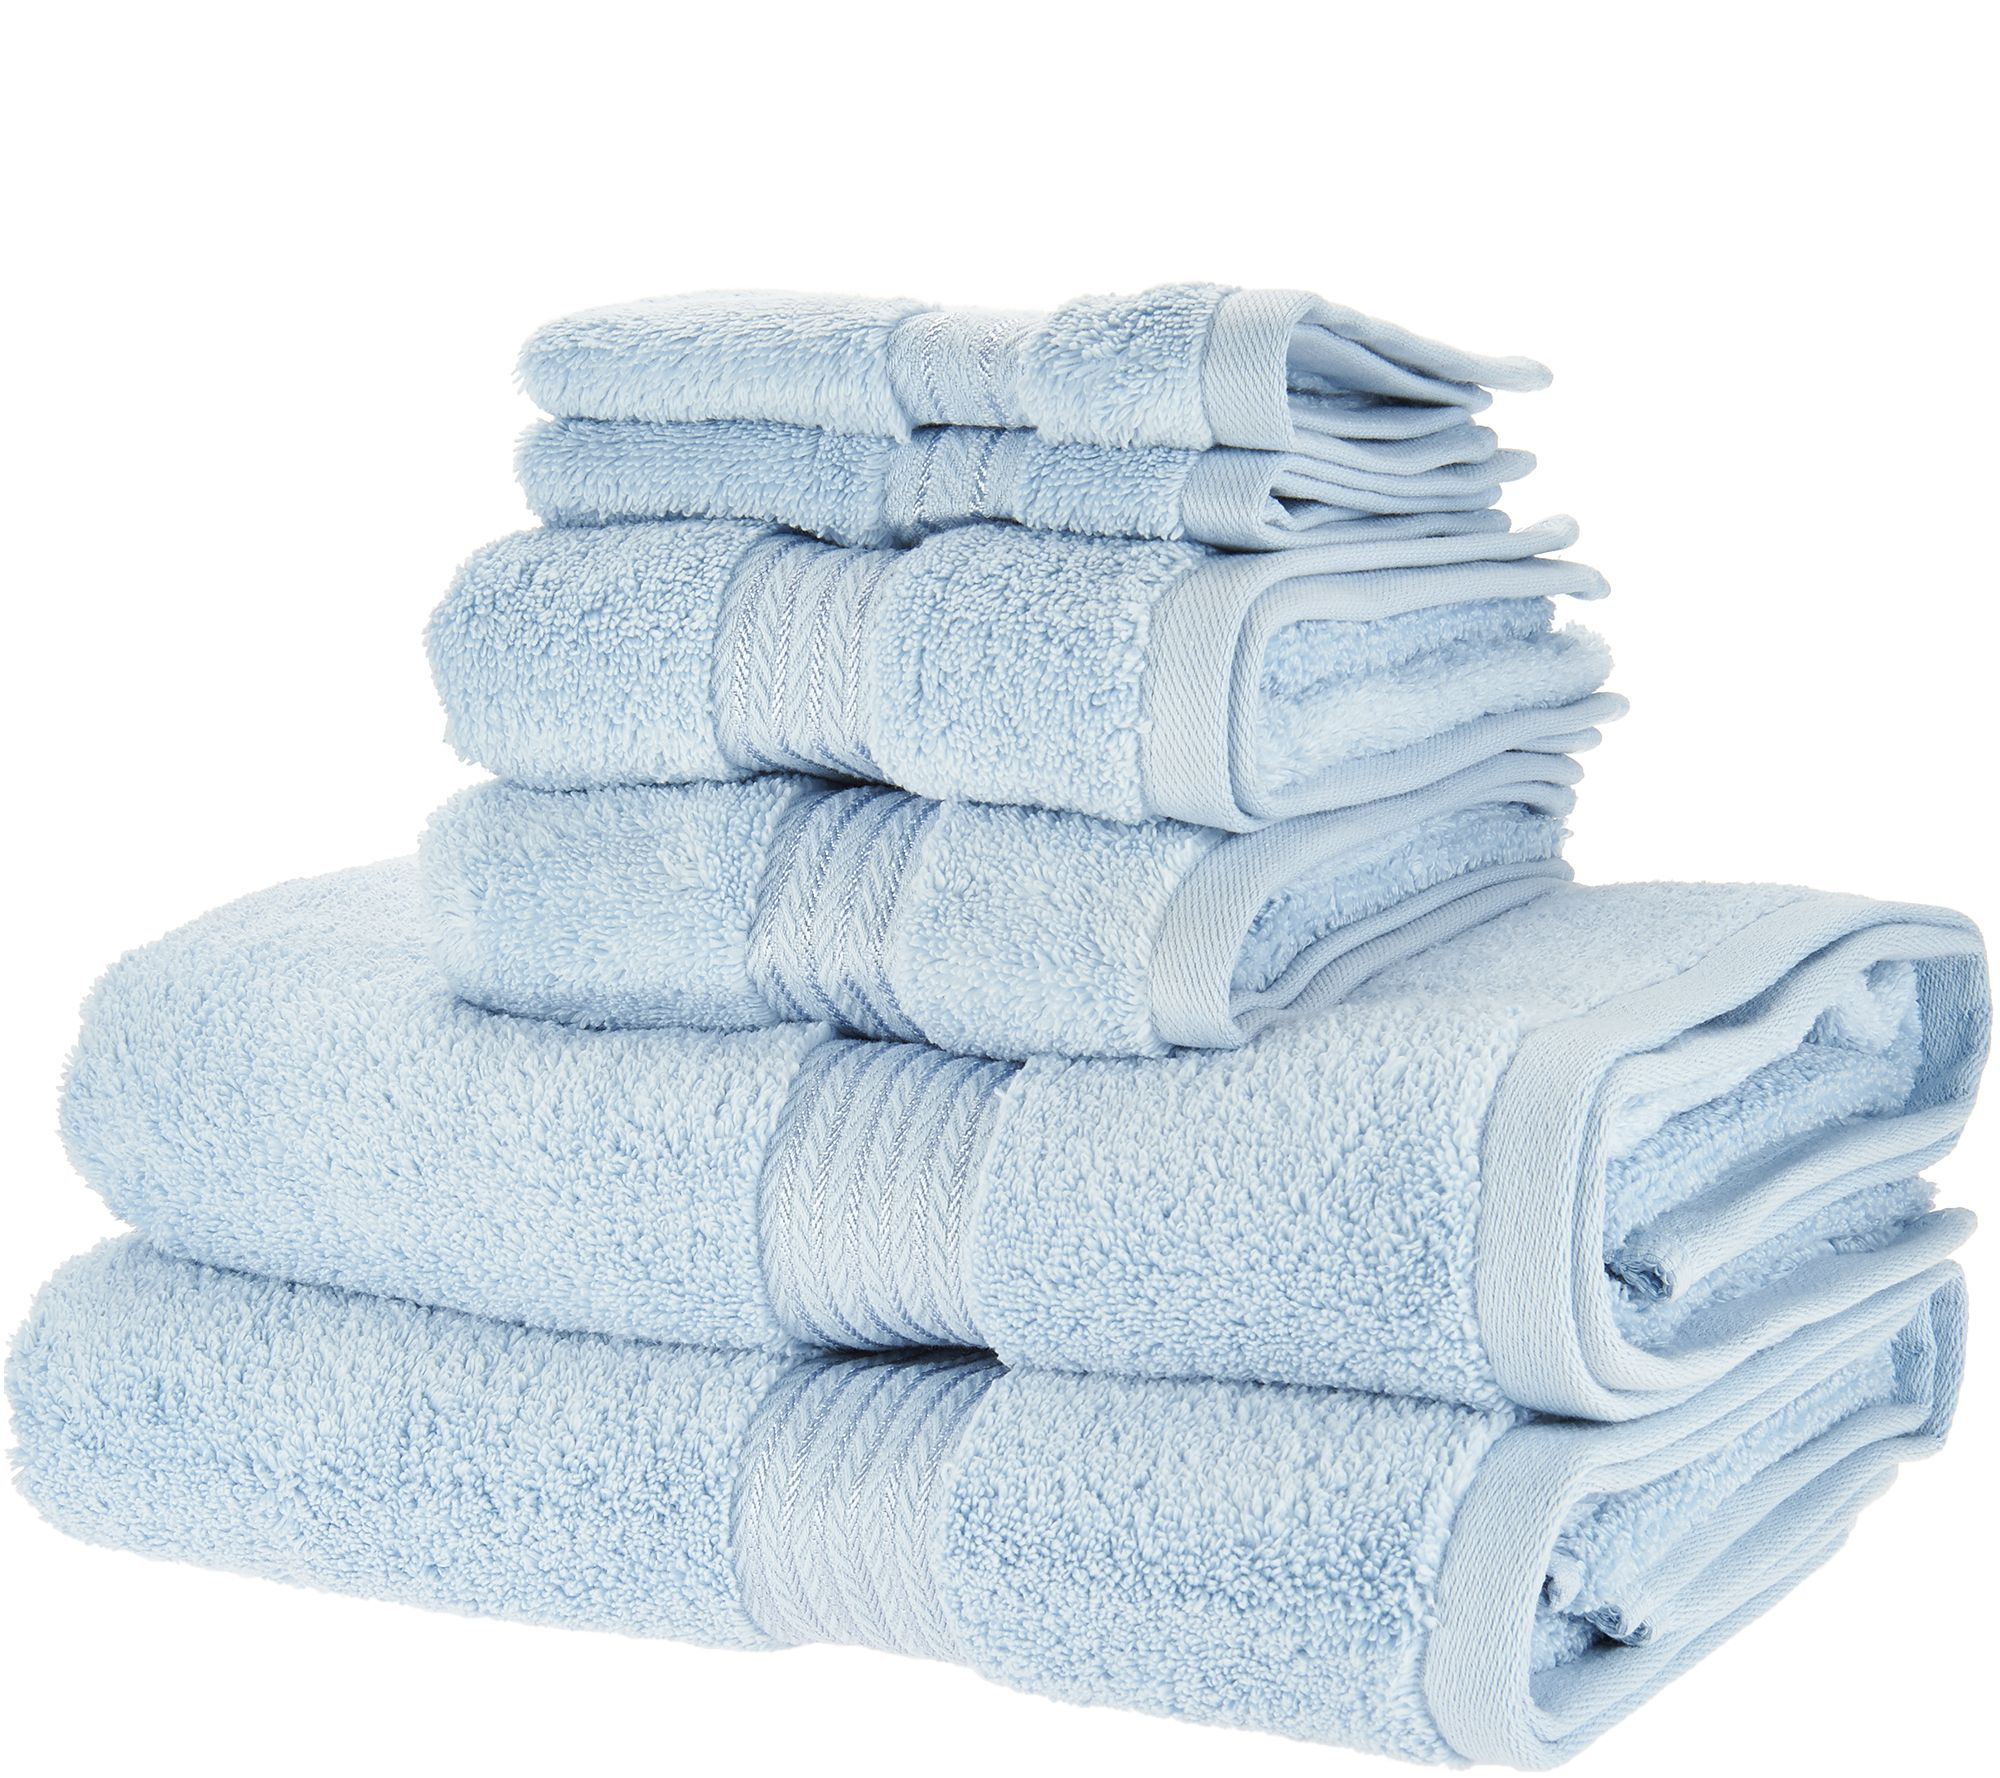 Charisma Classic 6 Piece 100% Cotton Towel Set   Page 1 U2014 QVC.com